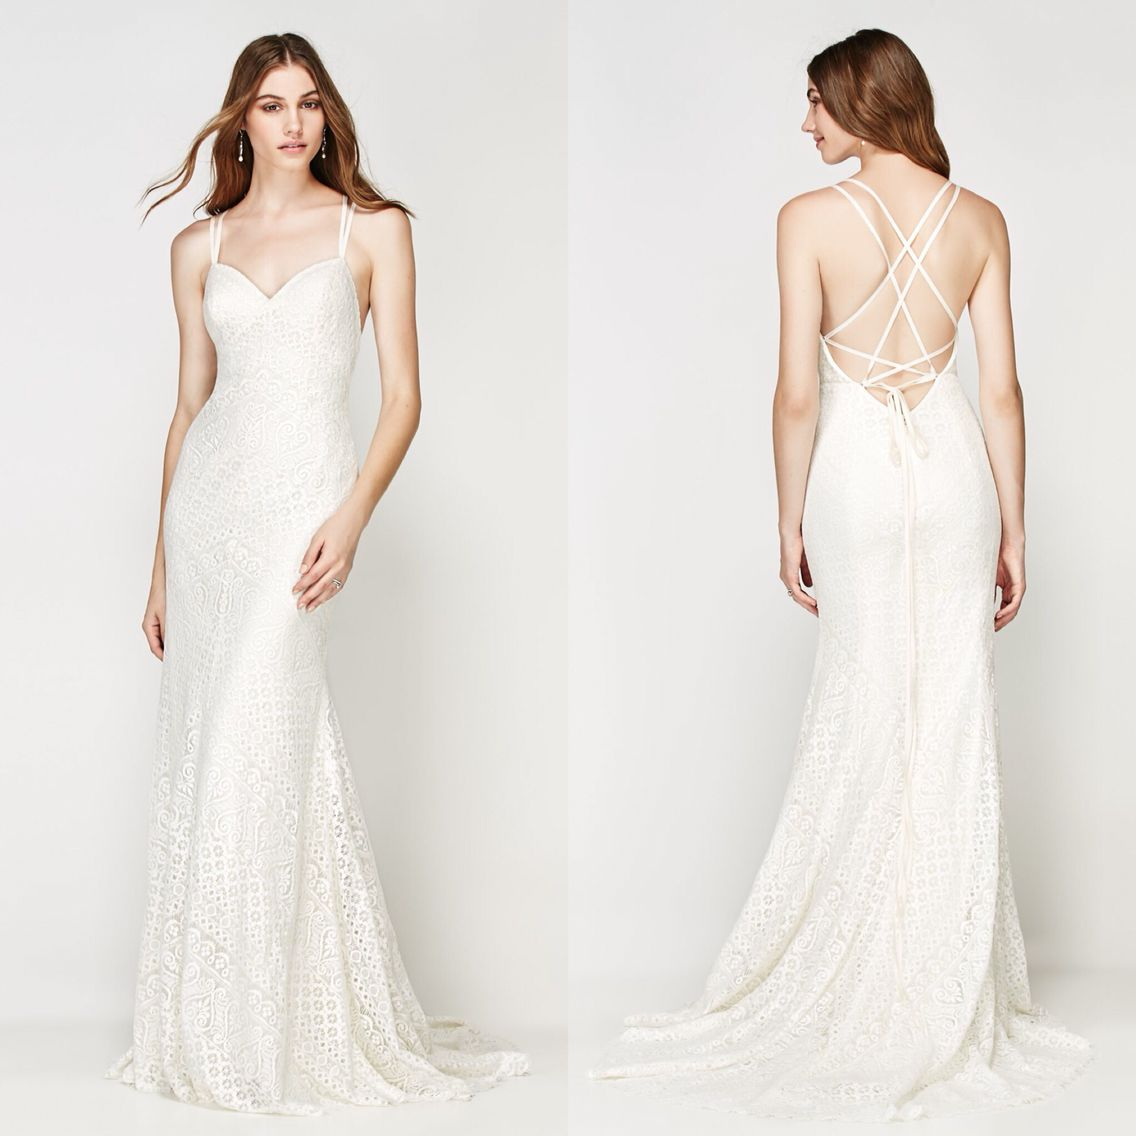 Wedding dresses fresno  Looks casual but lots of delicate detail in this dress Geometric